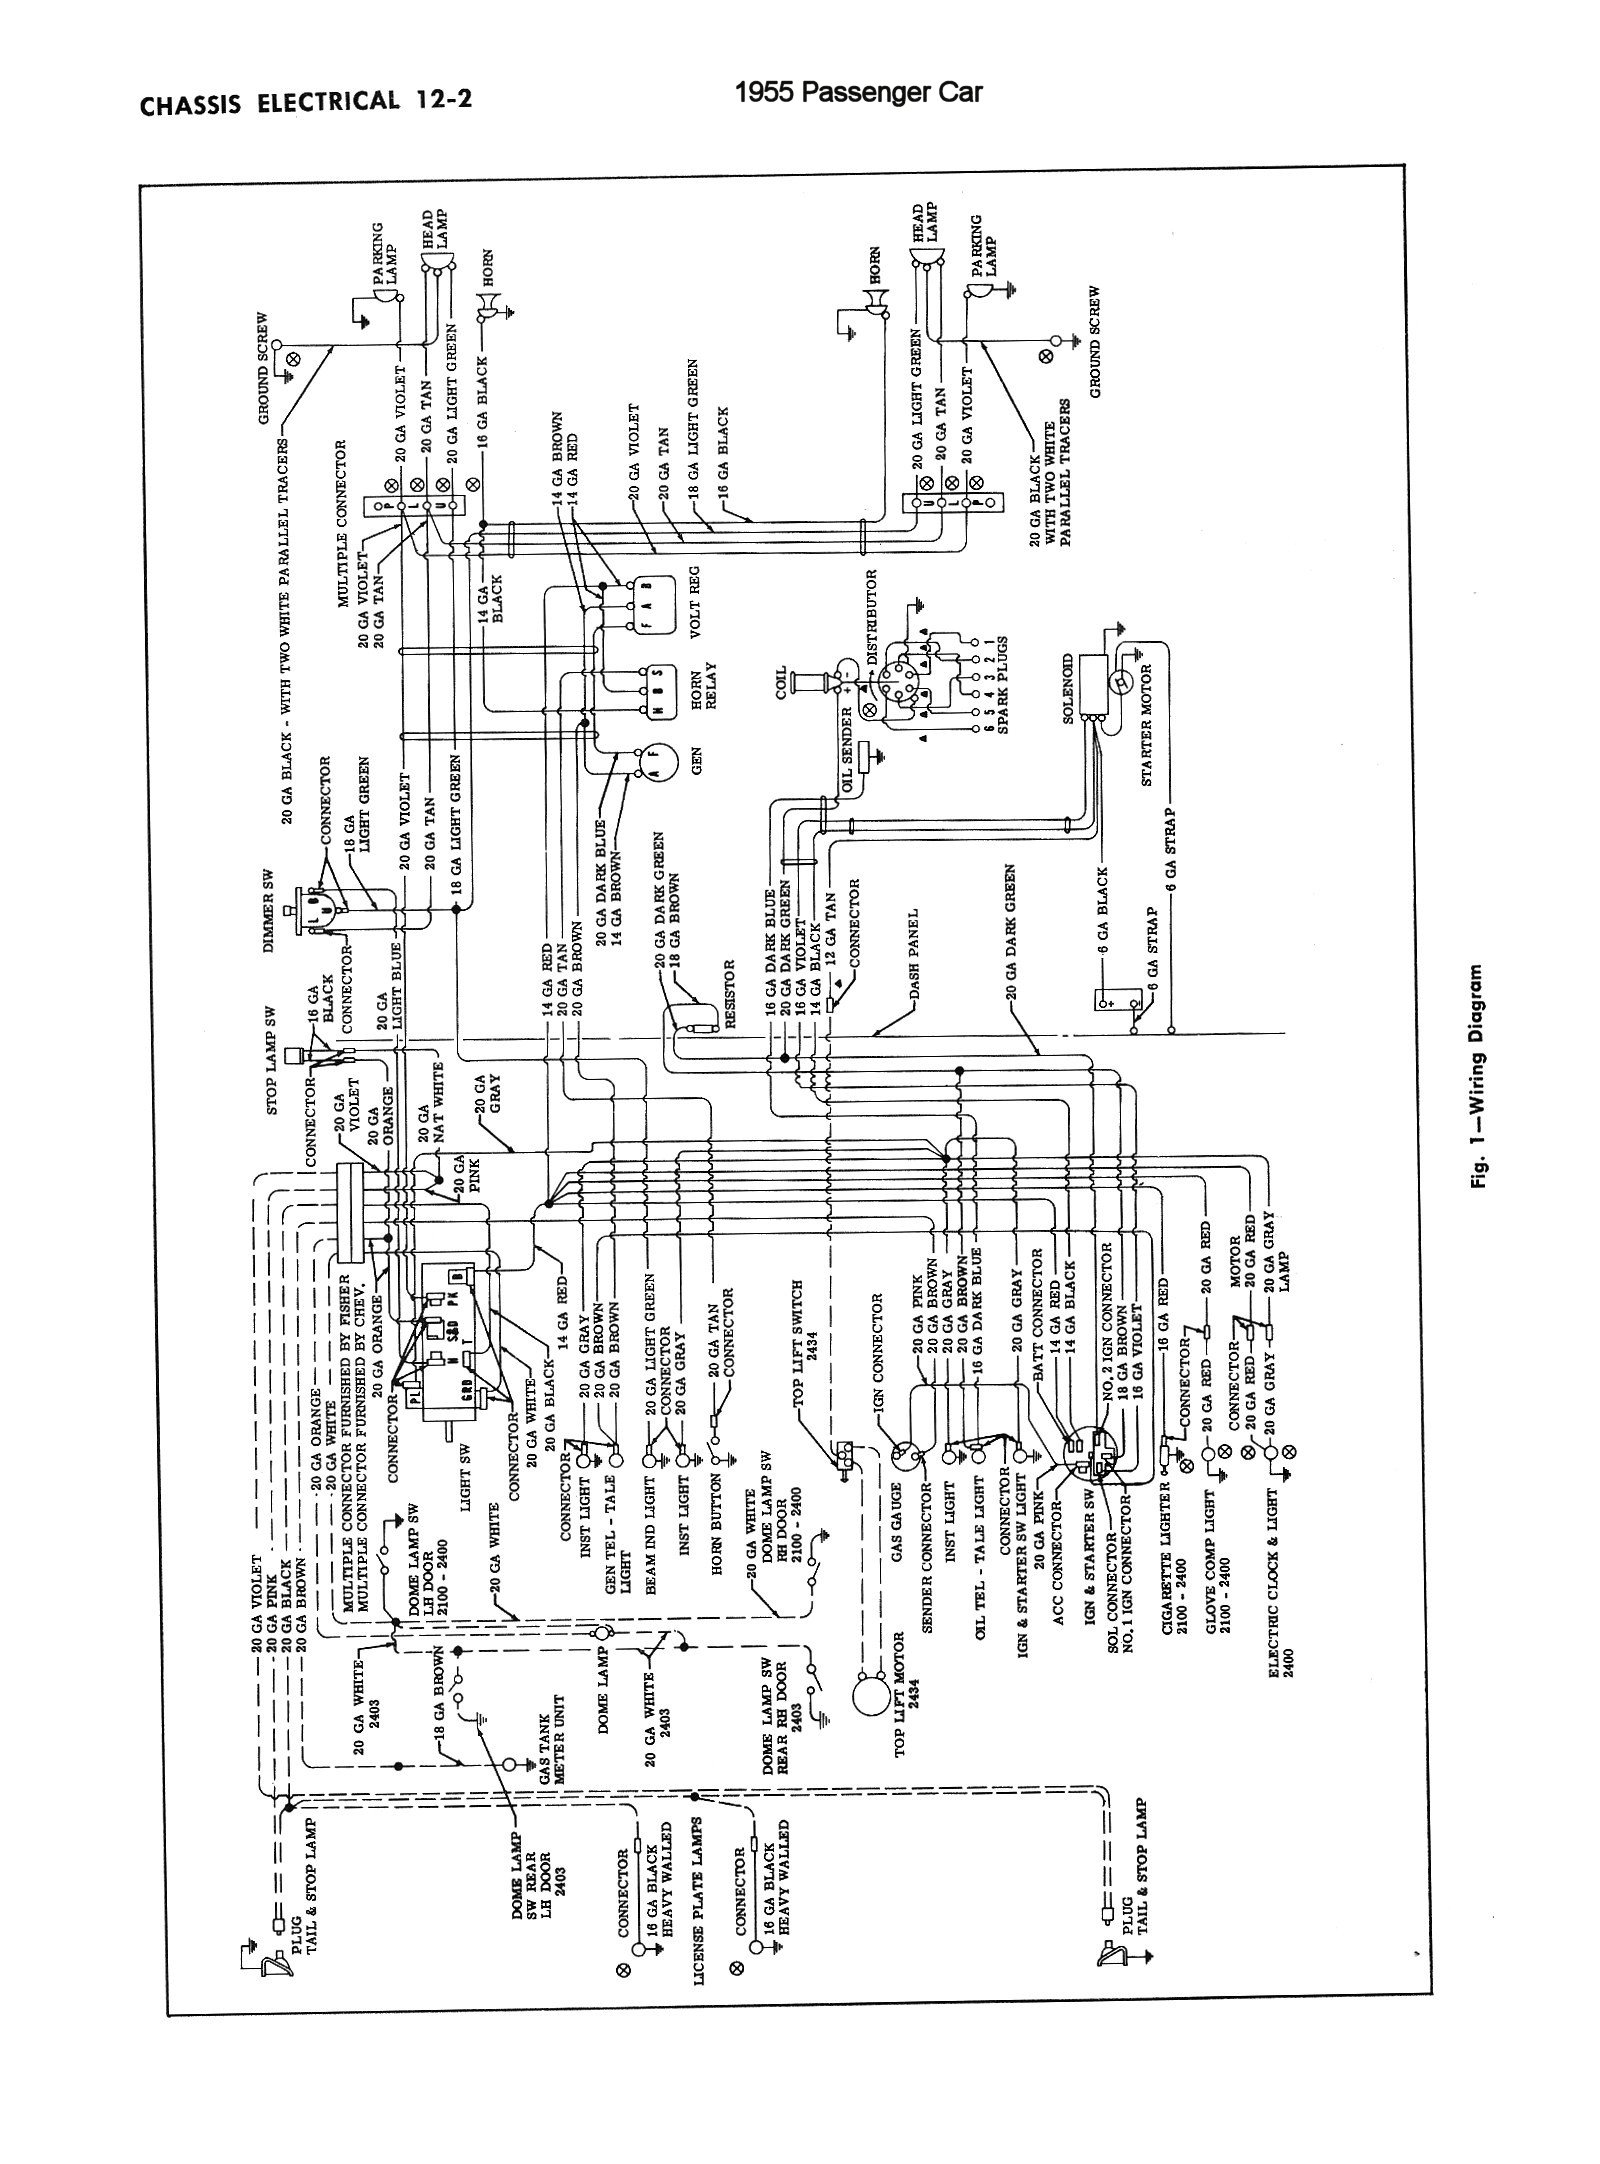 Chevy Wiring Diagrams Electrical 1955 Car Chassis